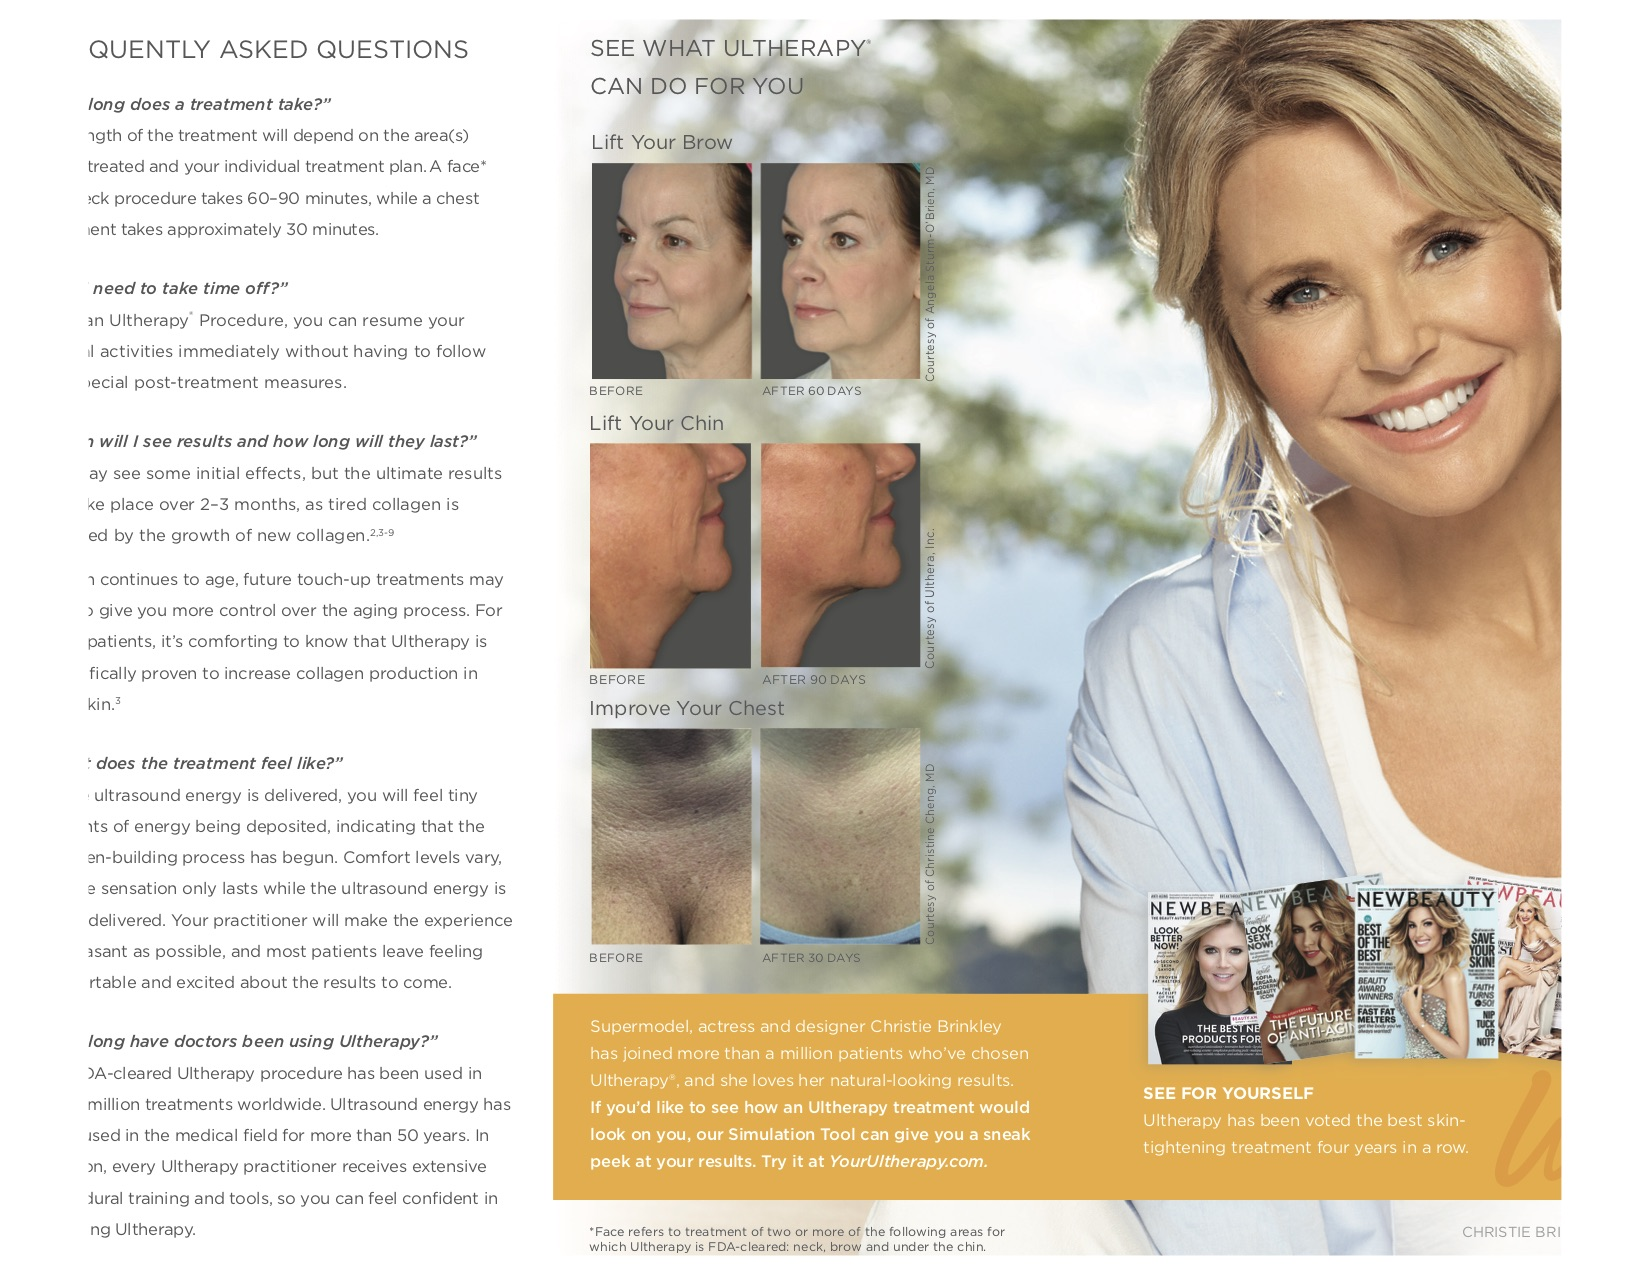 Christie Brinkley Ultherapy Skin Tightening